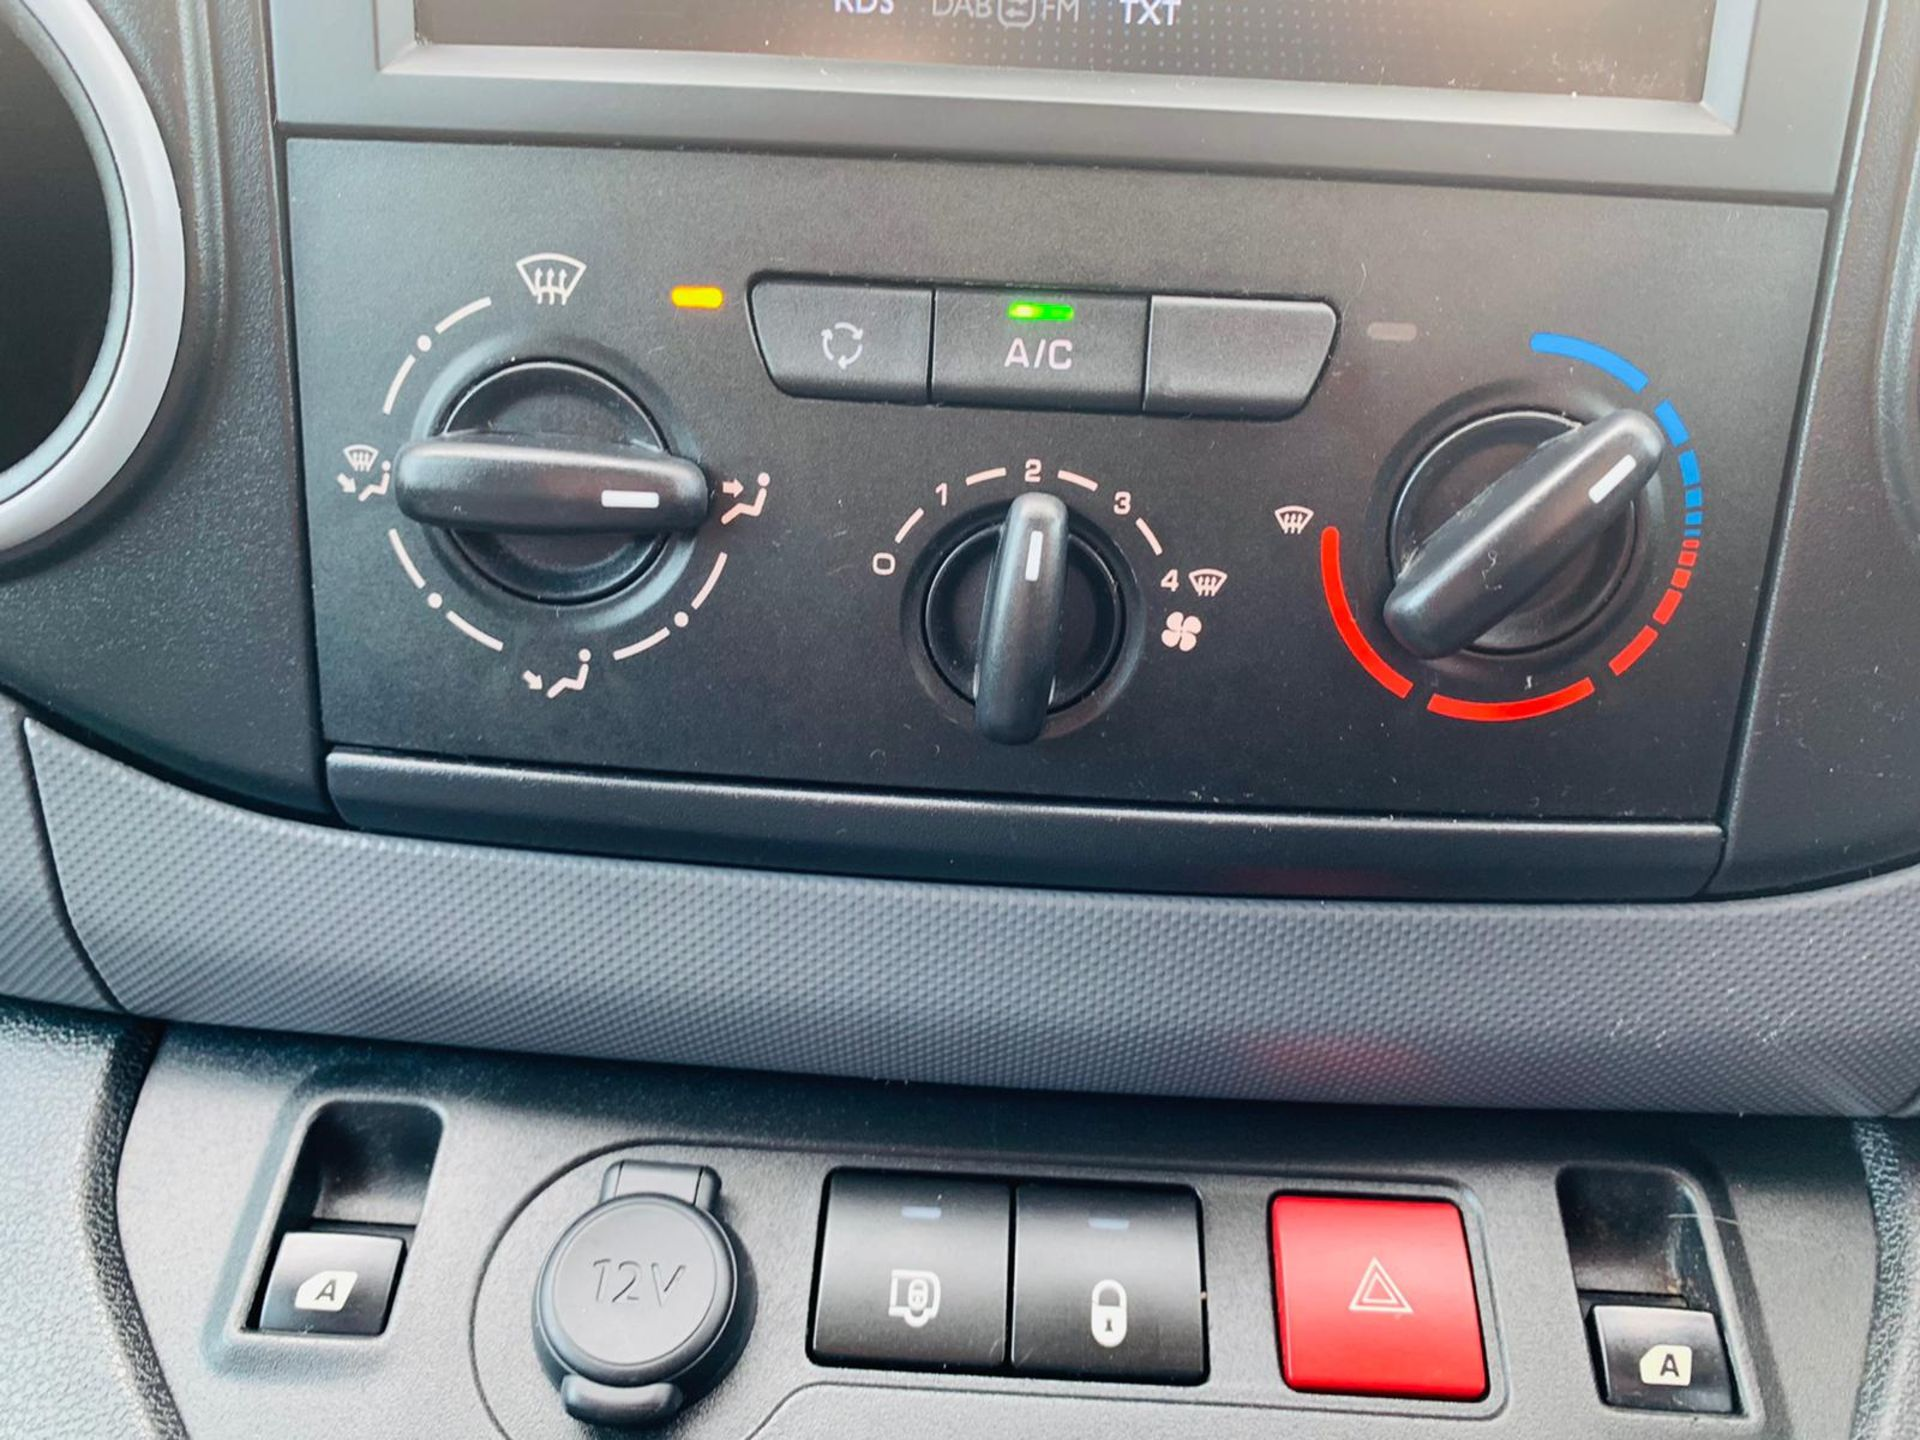 Peugeot Partner 1.6 HDI Professional 2017 Model - 1 Owner - Service Printout - Air Con - Image 19 of 23